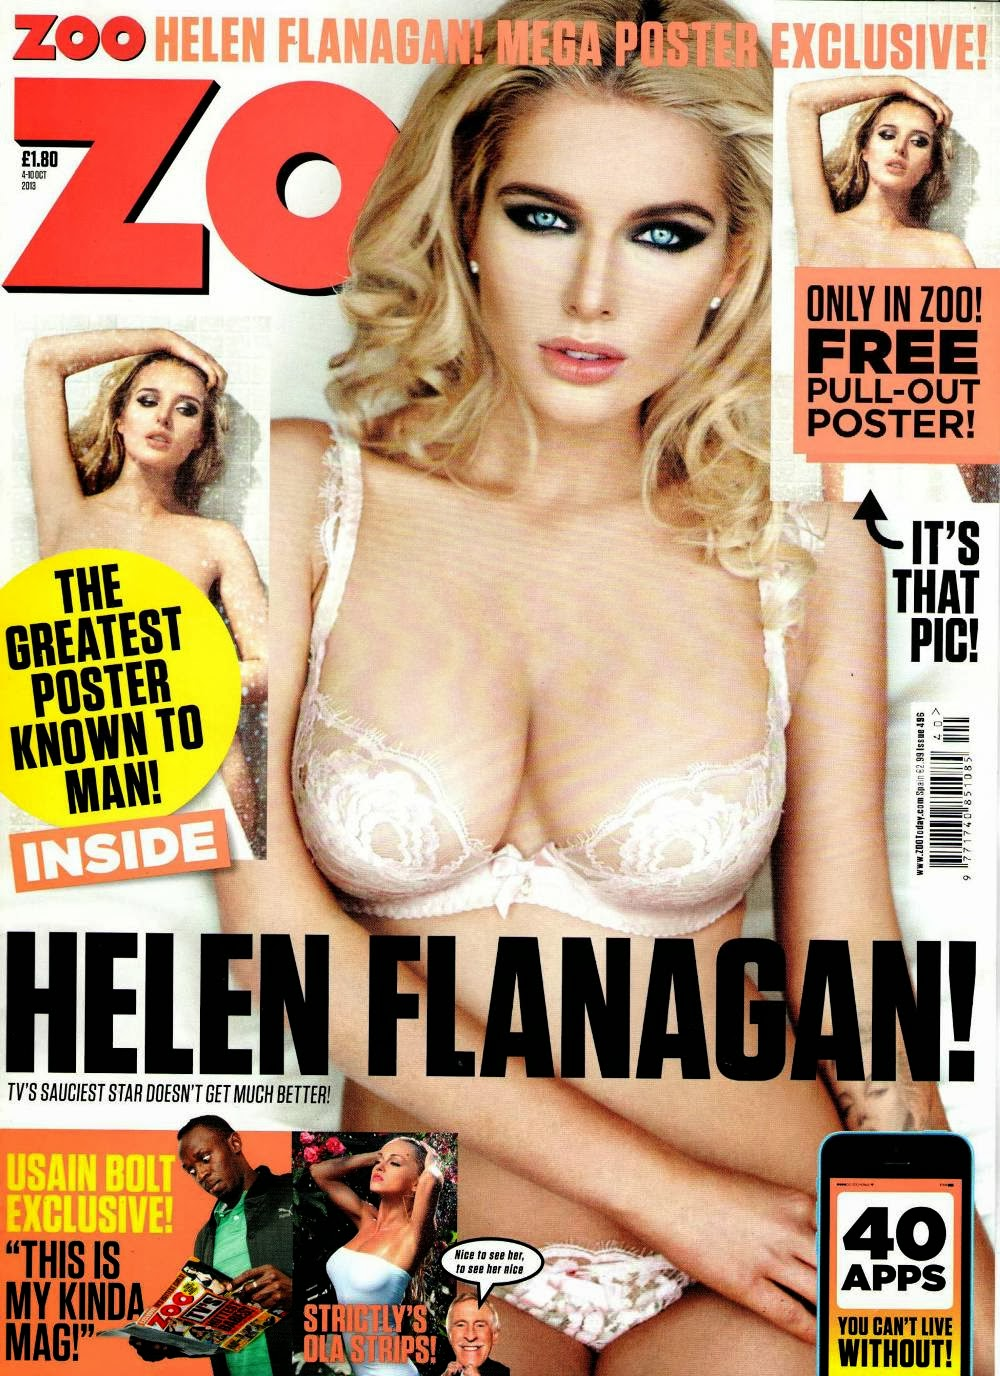 Helen Flanagan Topless in Zoo Magazine